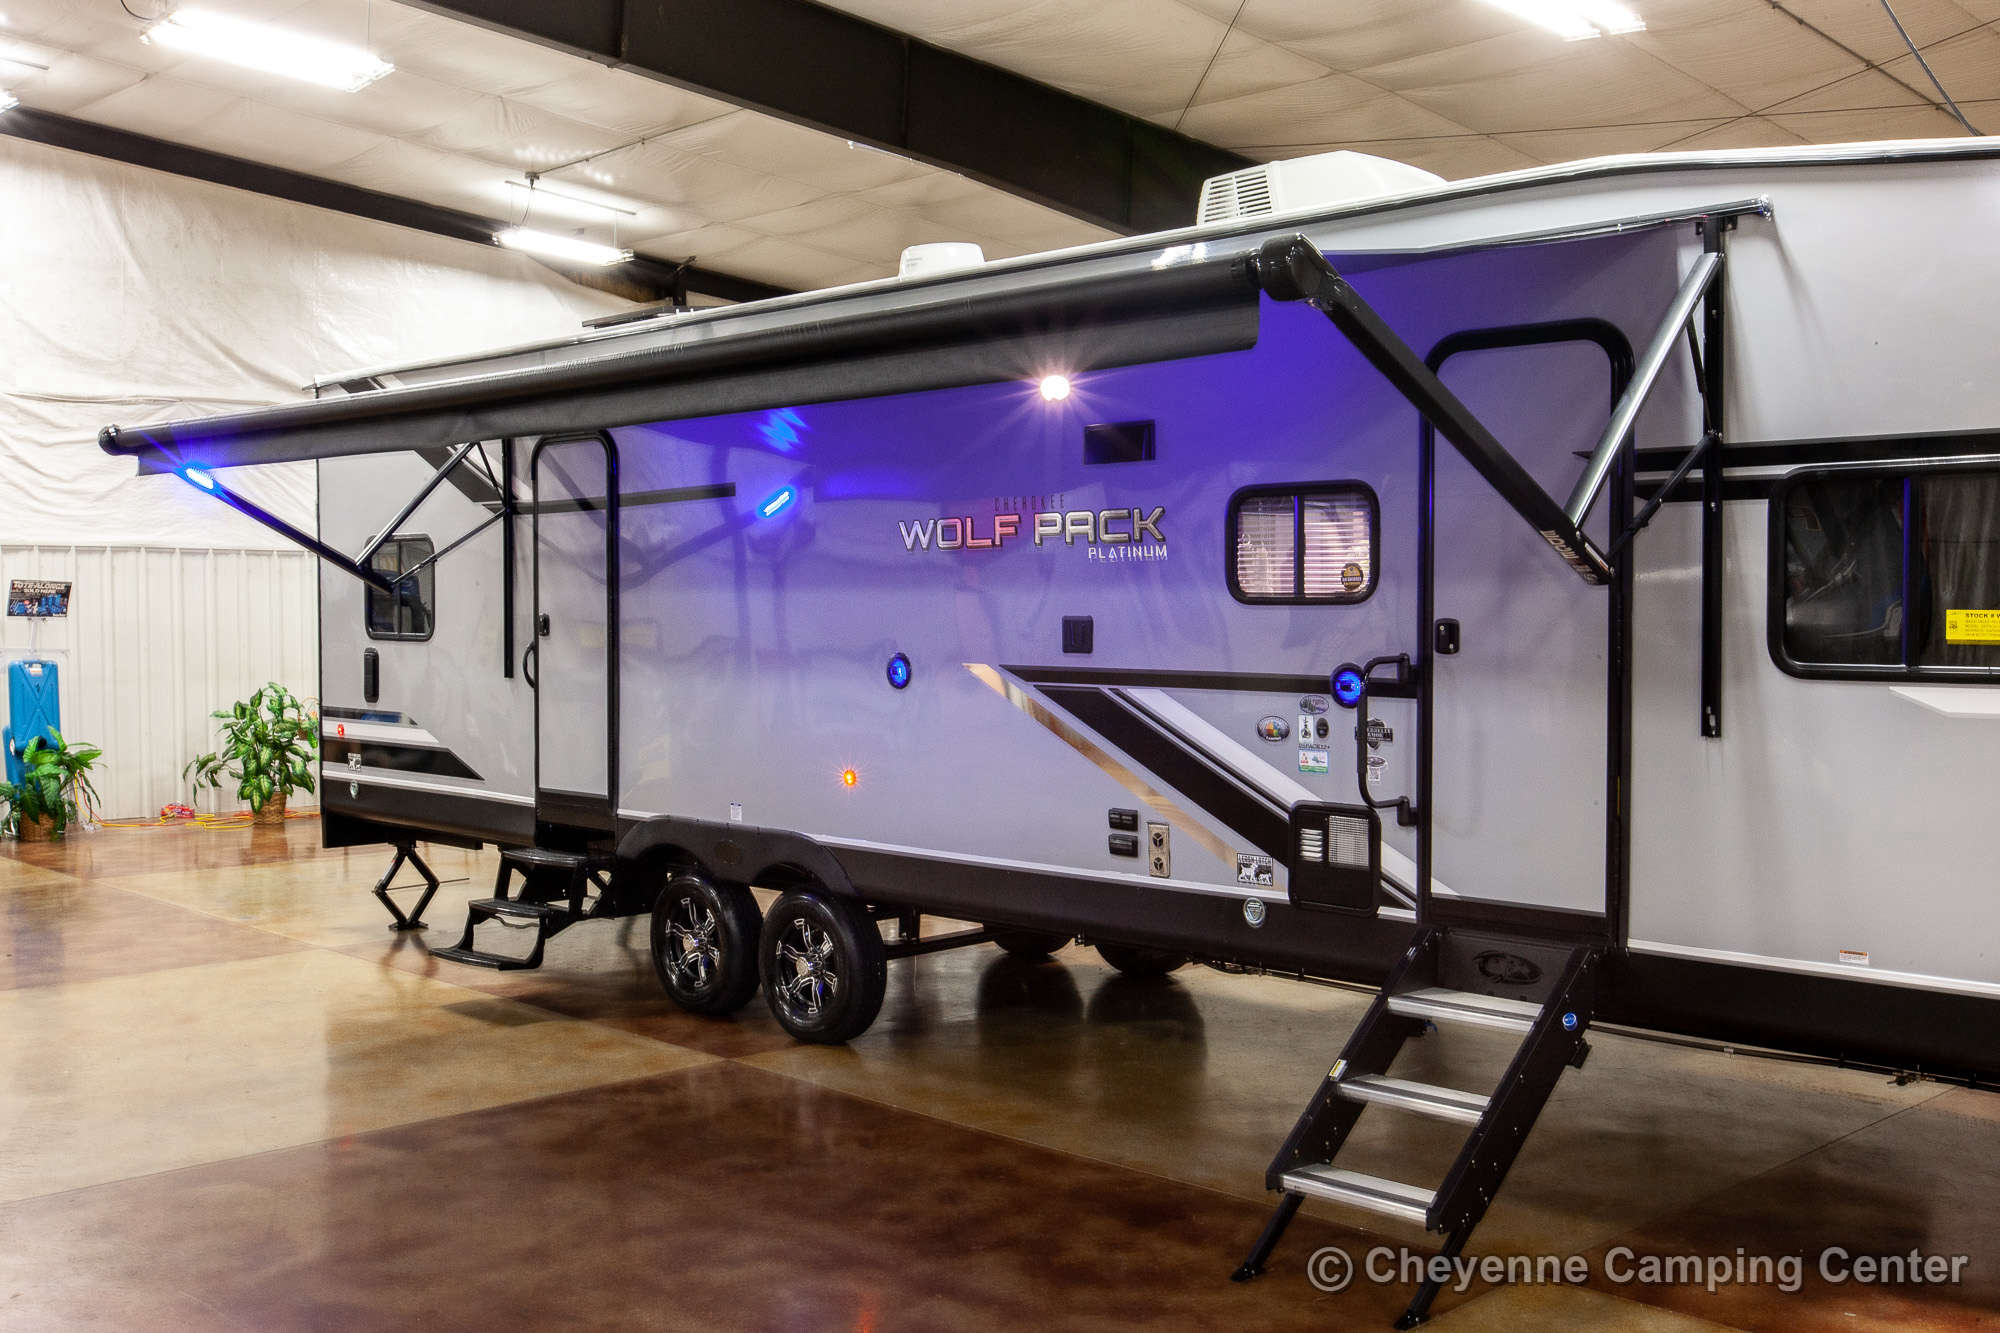 2021 Forest River Cherokee Wolf Pack 25PACK12 Bunkhouse Toy Hauler Travel Trailer Exterior Image